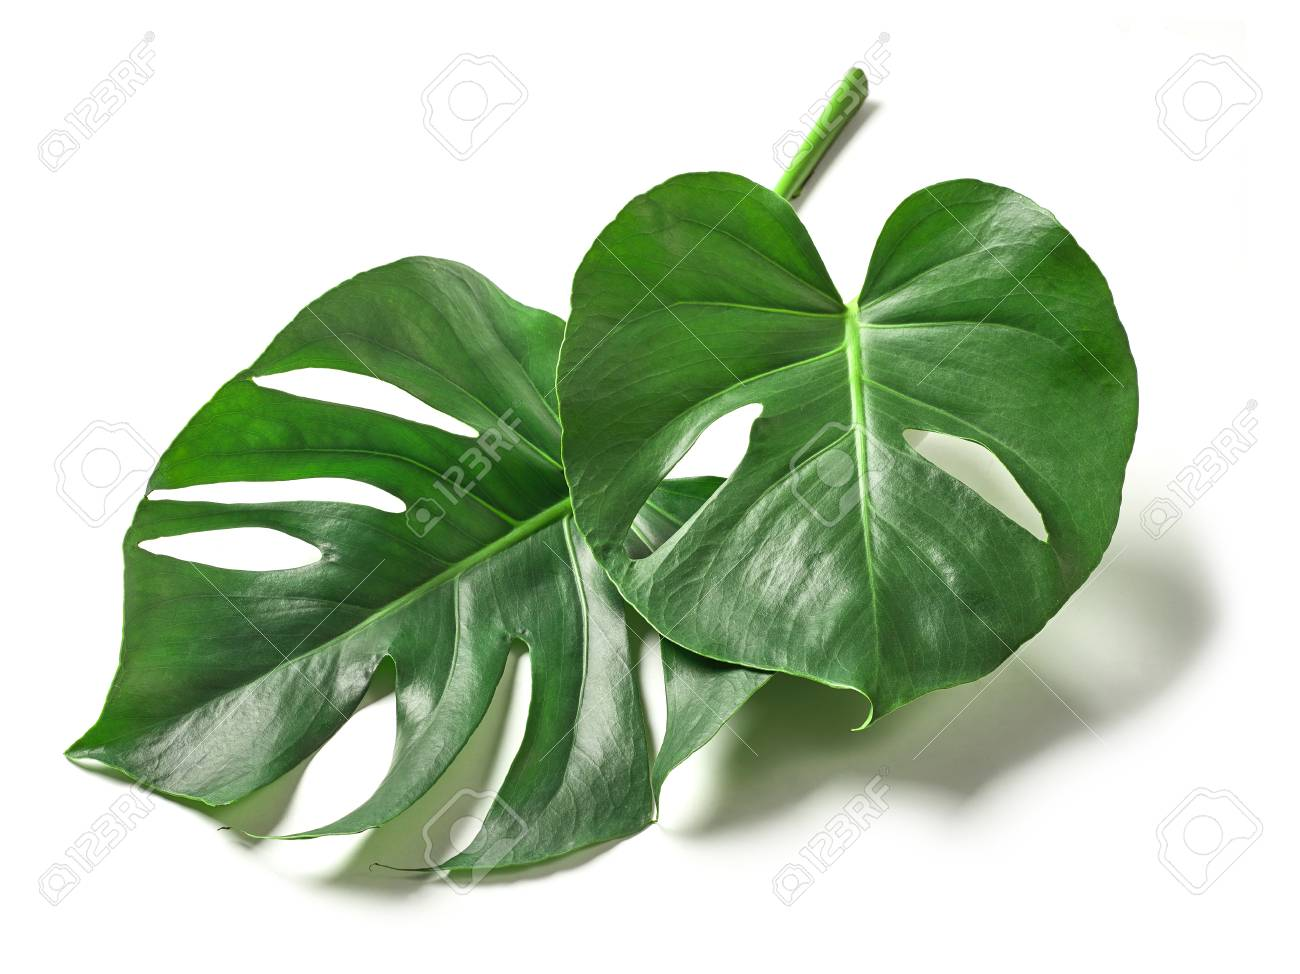 Tropical Leaves Of Monstera Plant Isolated On White Background Stock Photo Picture And Royalty Free Image Image 89191891 Tropical leaves isolated on white background, top view. tropical leaves of monstera plant isolated on white background